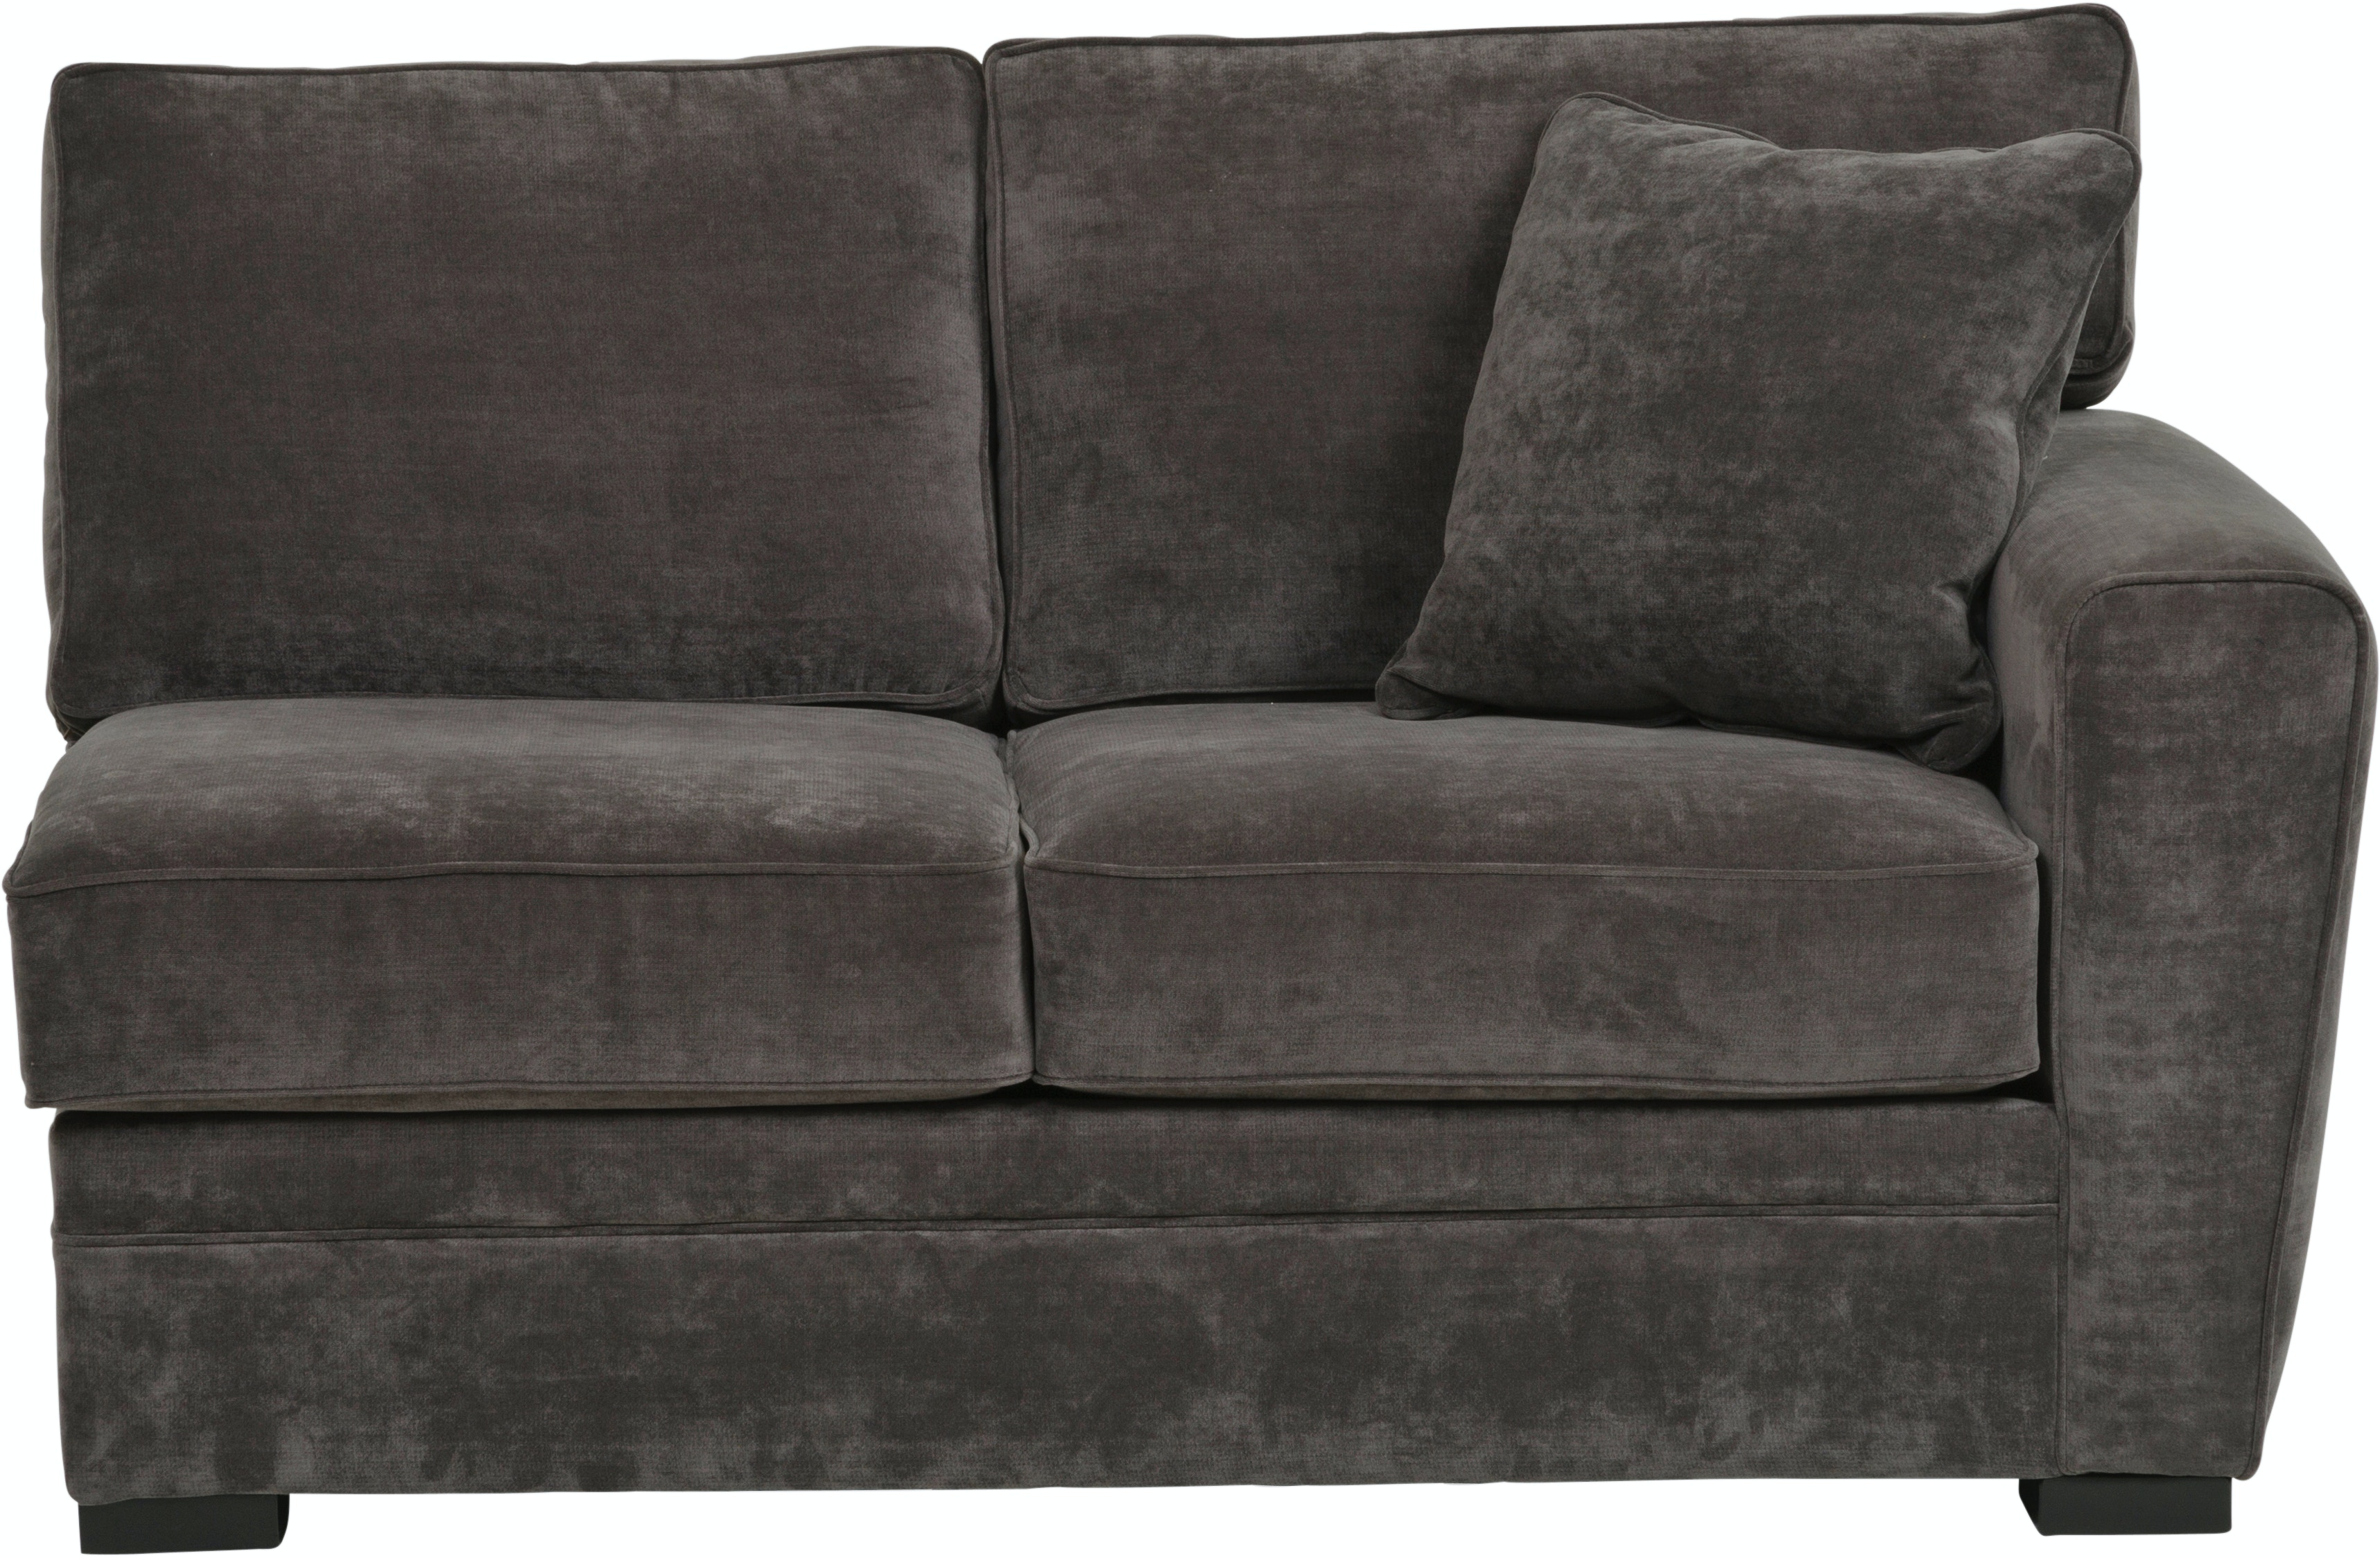 Living Room Artemis 4 Piece Sectional